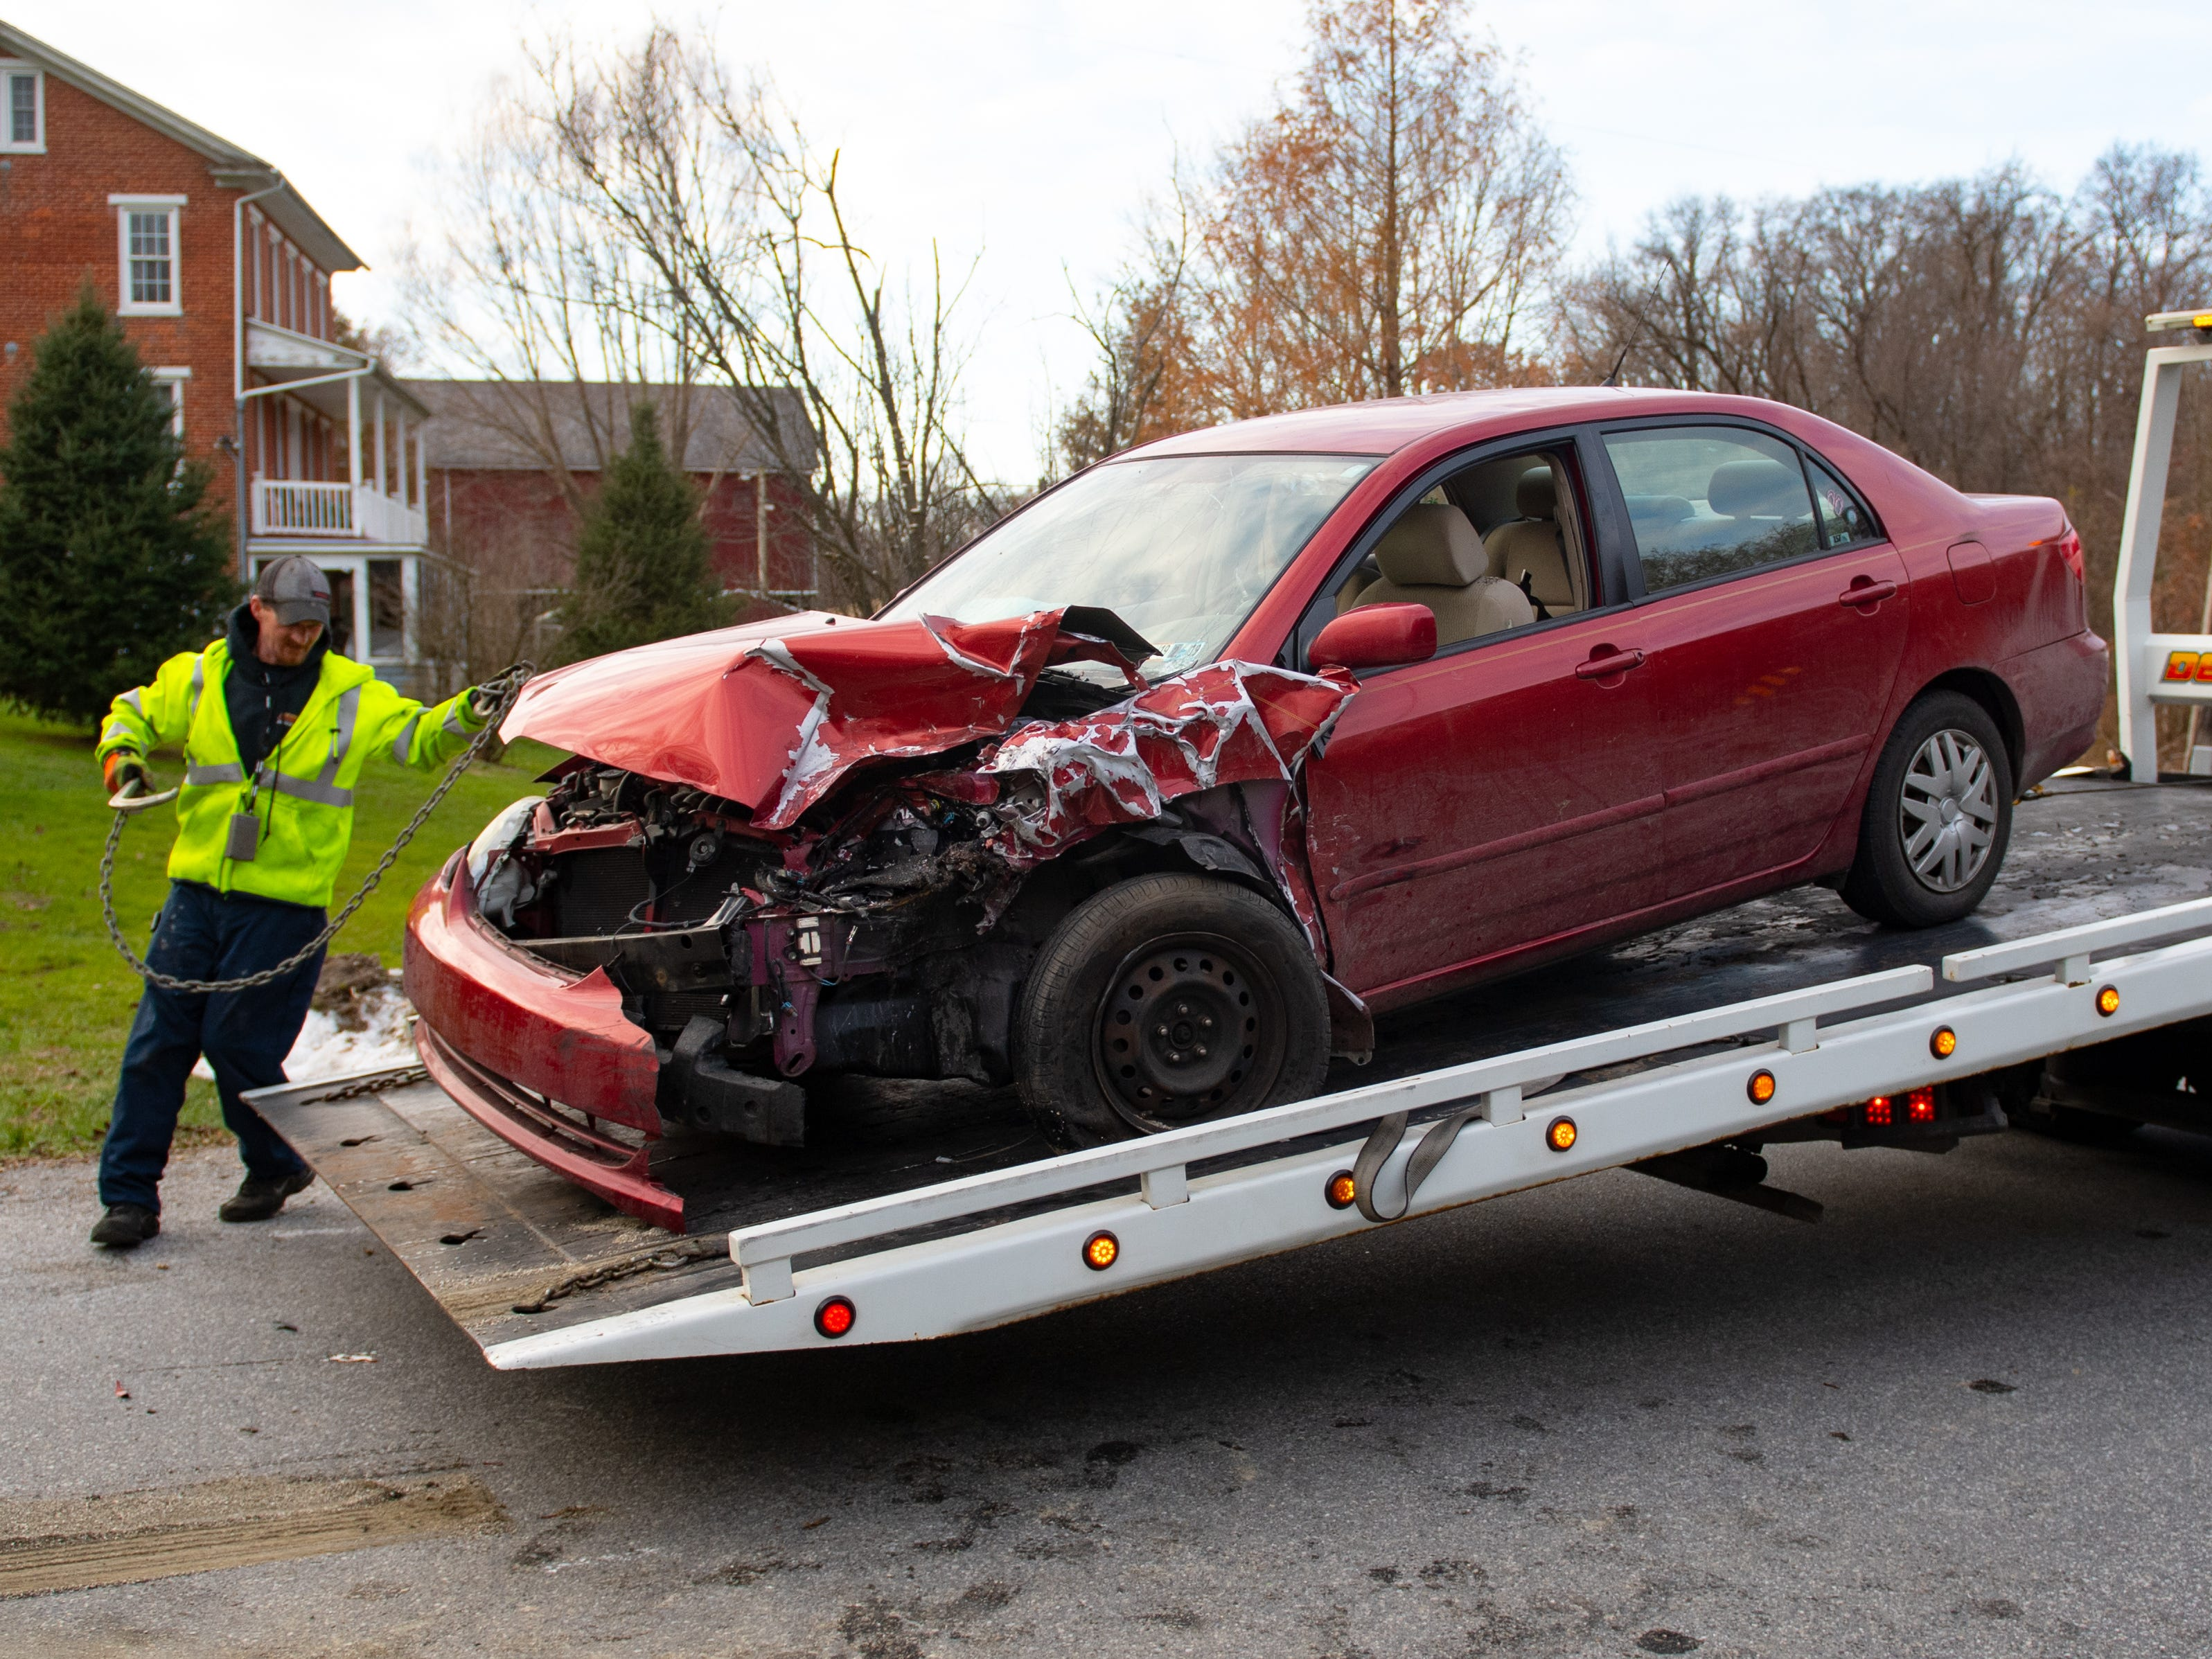 Four people in the sedan were transported to the hospital to be treated for non life-threatening injuries. The driver of the SUV was not injured, November 23, 2018.